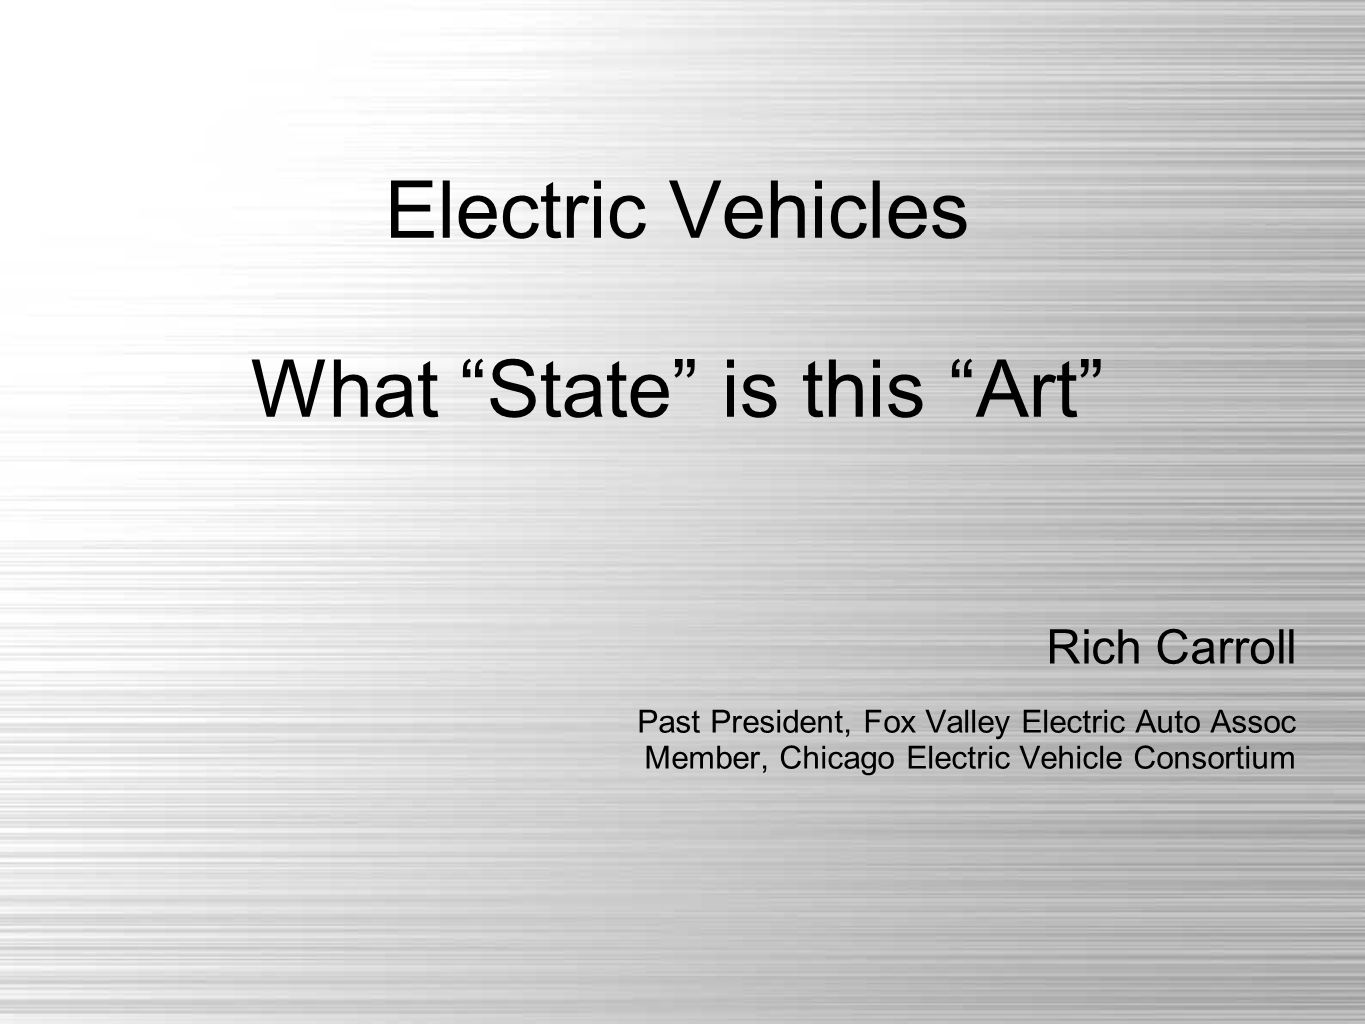 Electric Vehicles What State is this Art Rich Carroll Past President, Fox Valley Electric Auto Assoc Member, Chicago Electric Vehicle Consortium